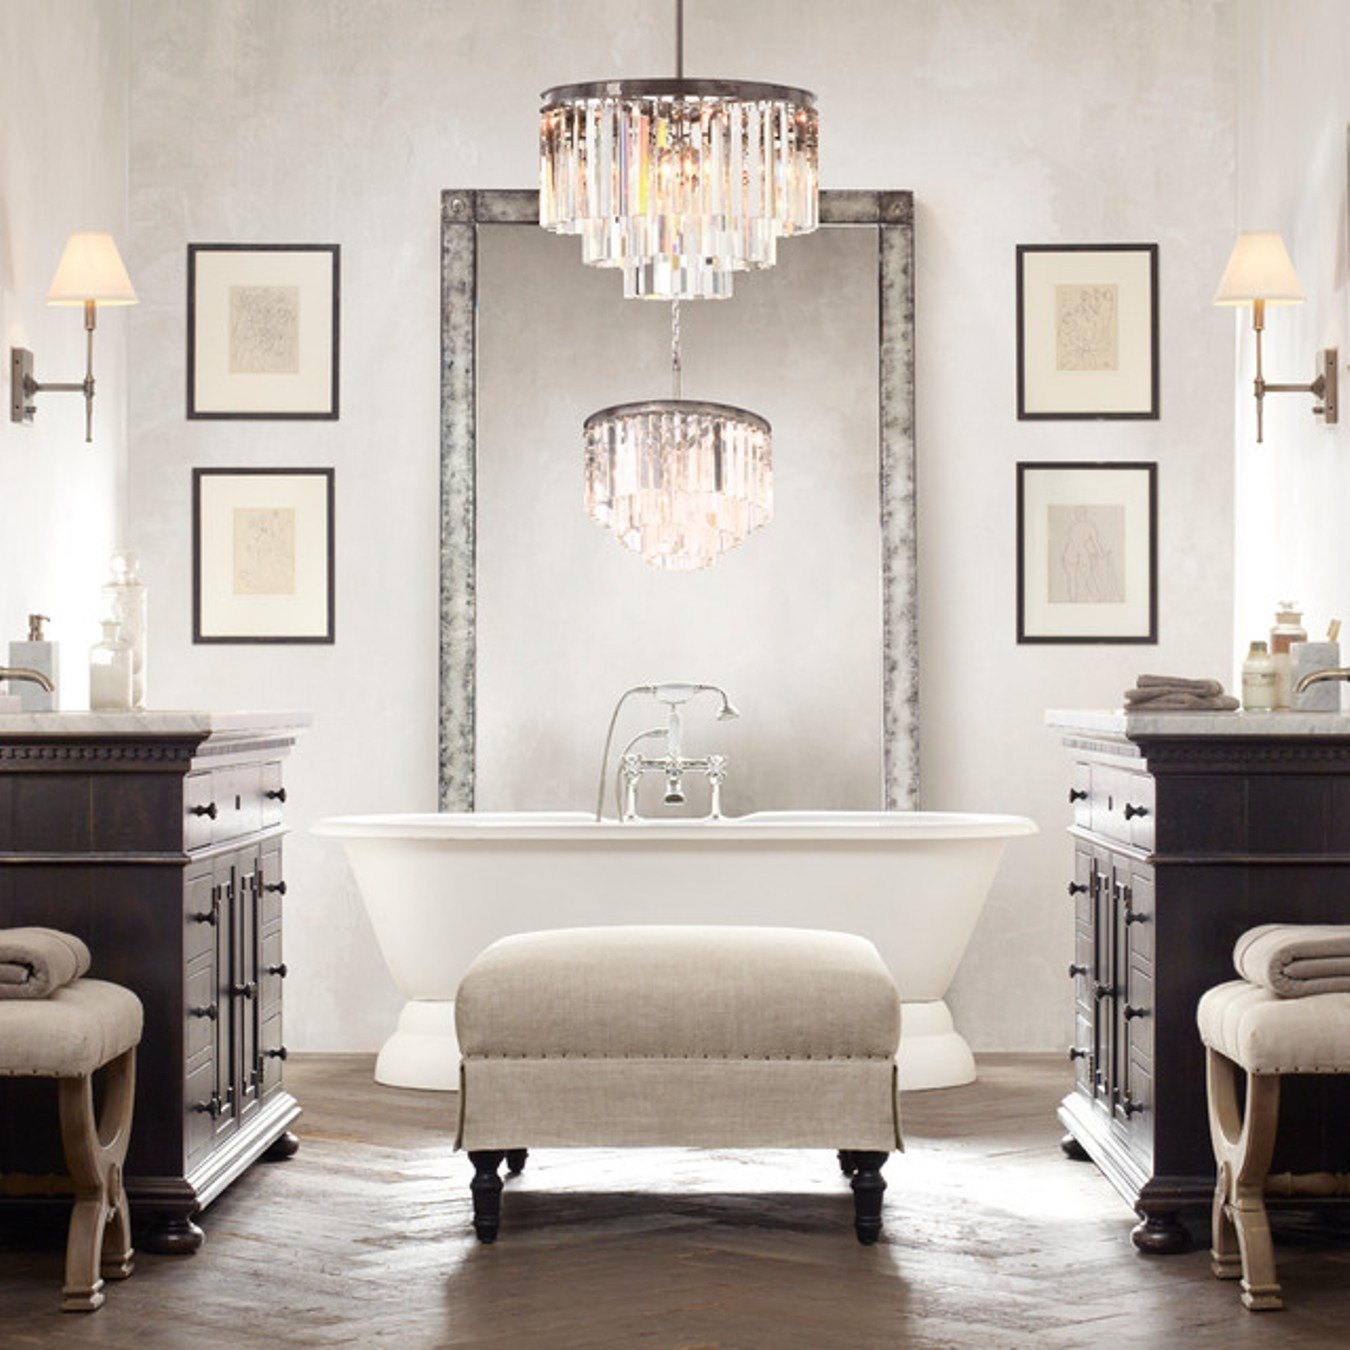 Modern Bathroom Bathroom Chandeliers Striking Small Decorative Throughout Modern Bathroom Chandeliers (Image 15 of 15)